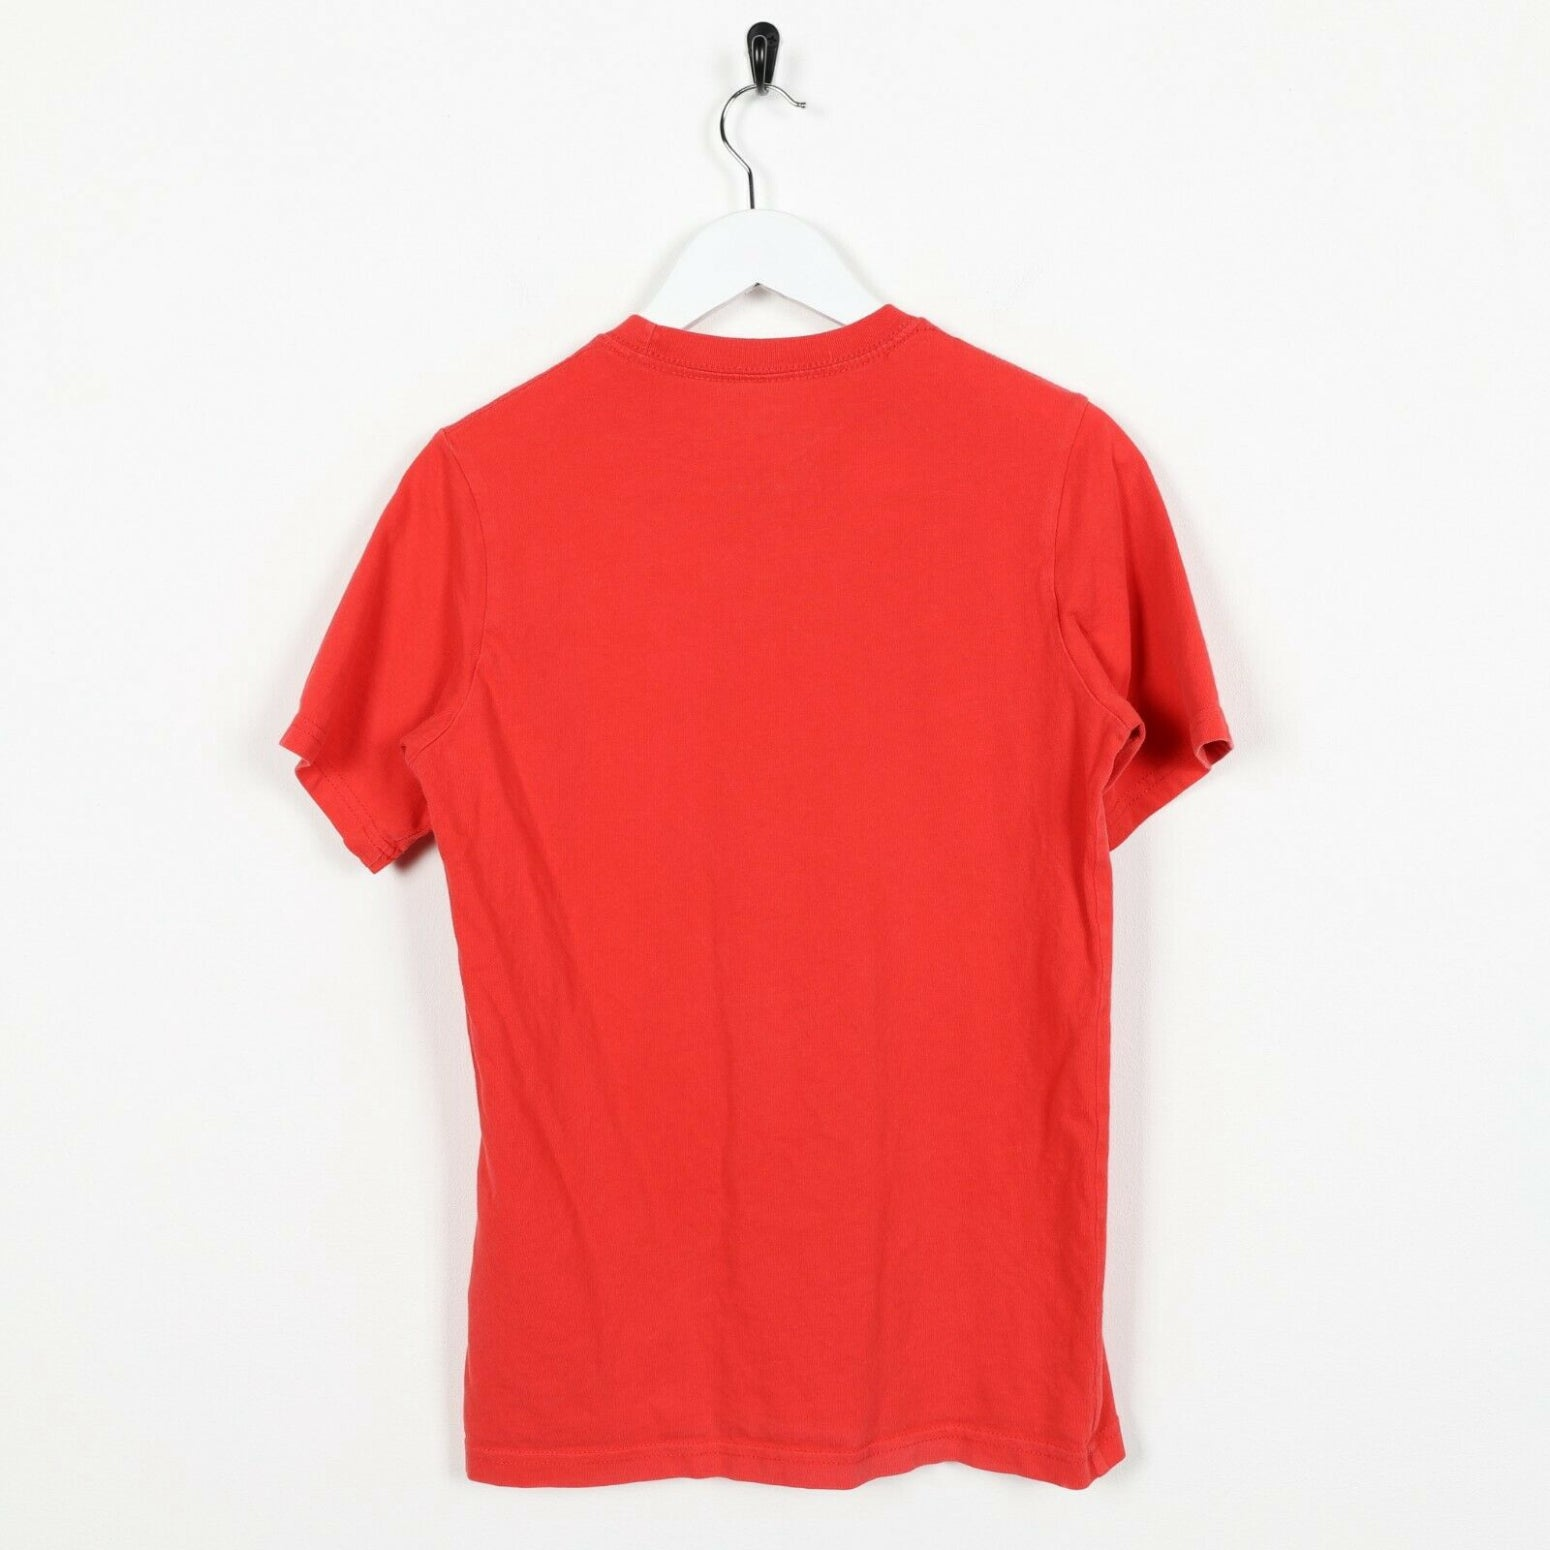 Vintage NIKE Graphic T Shirt Tee Red Small S